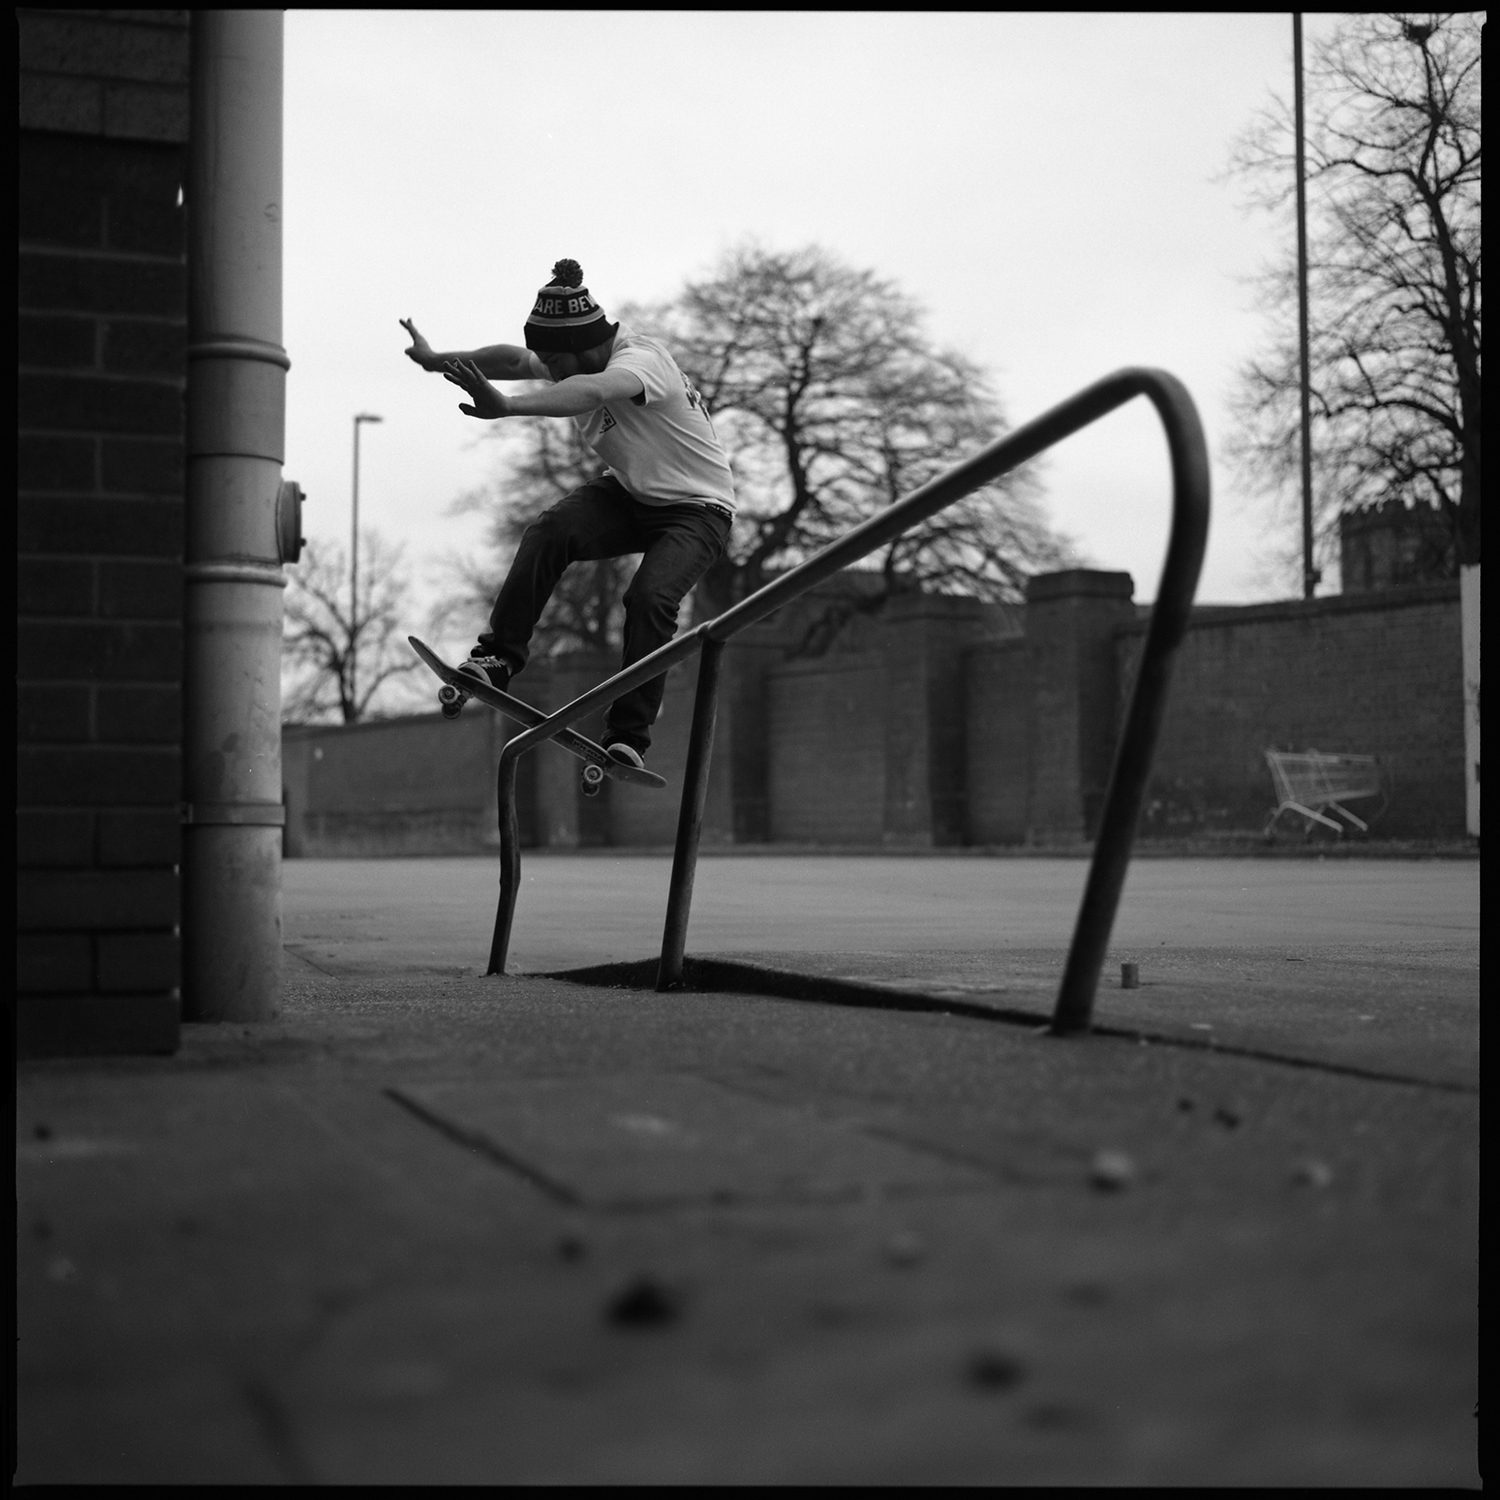 Skate Documentary Photography Shot on Black and White Film